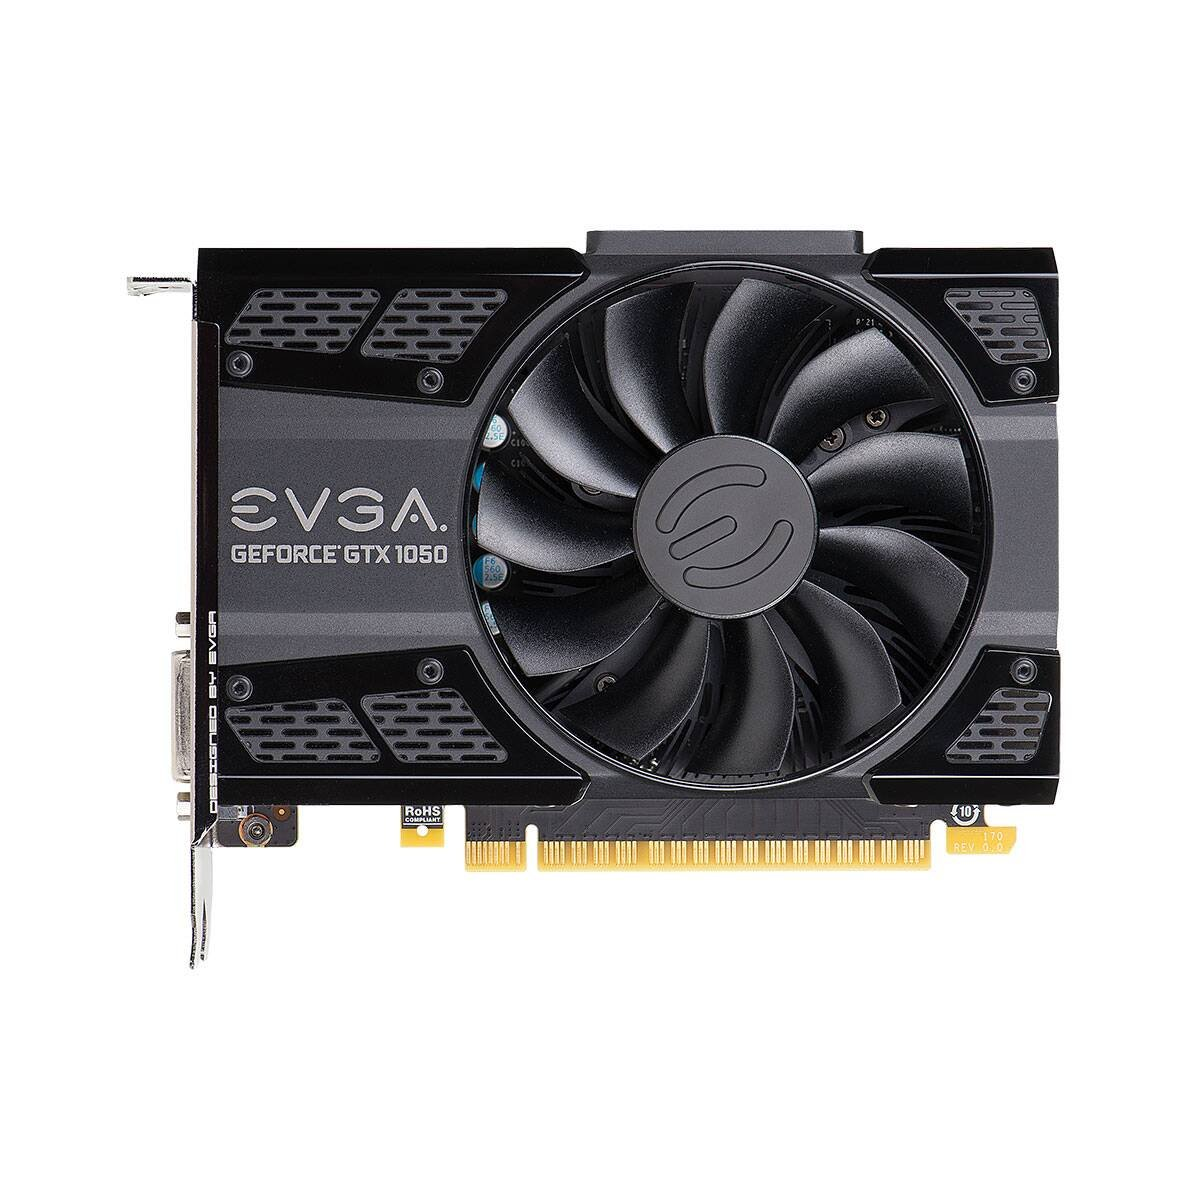 EVGA GTX 1050 SC 2GB DDR5 Graphics Card